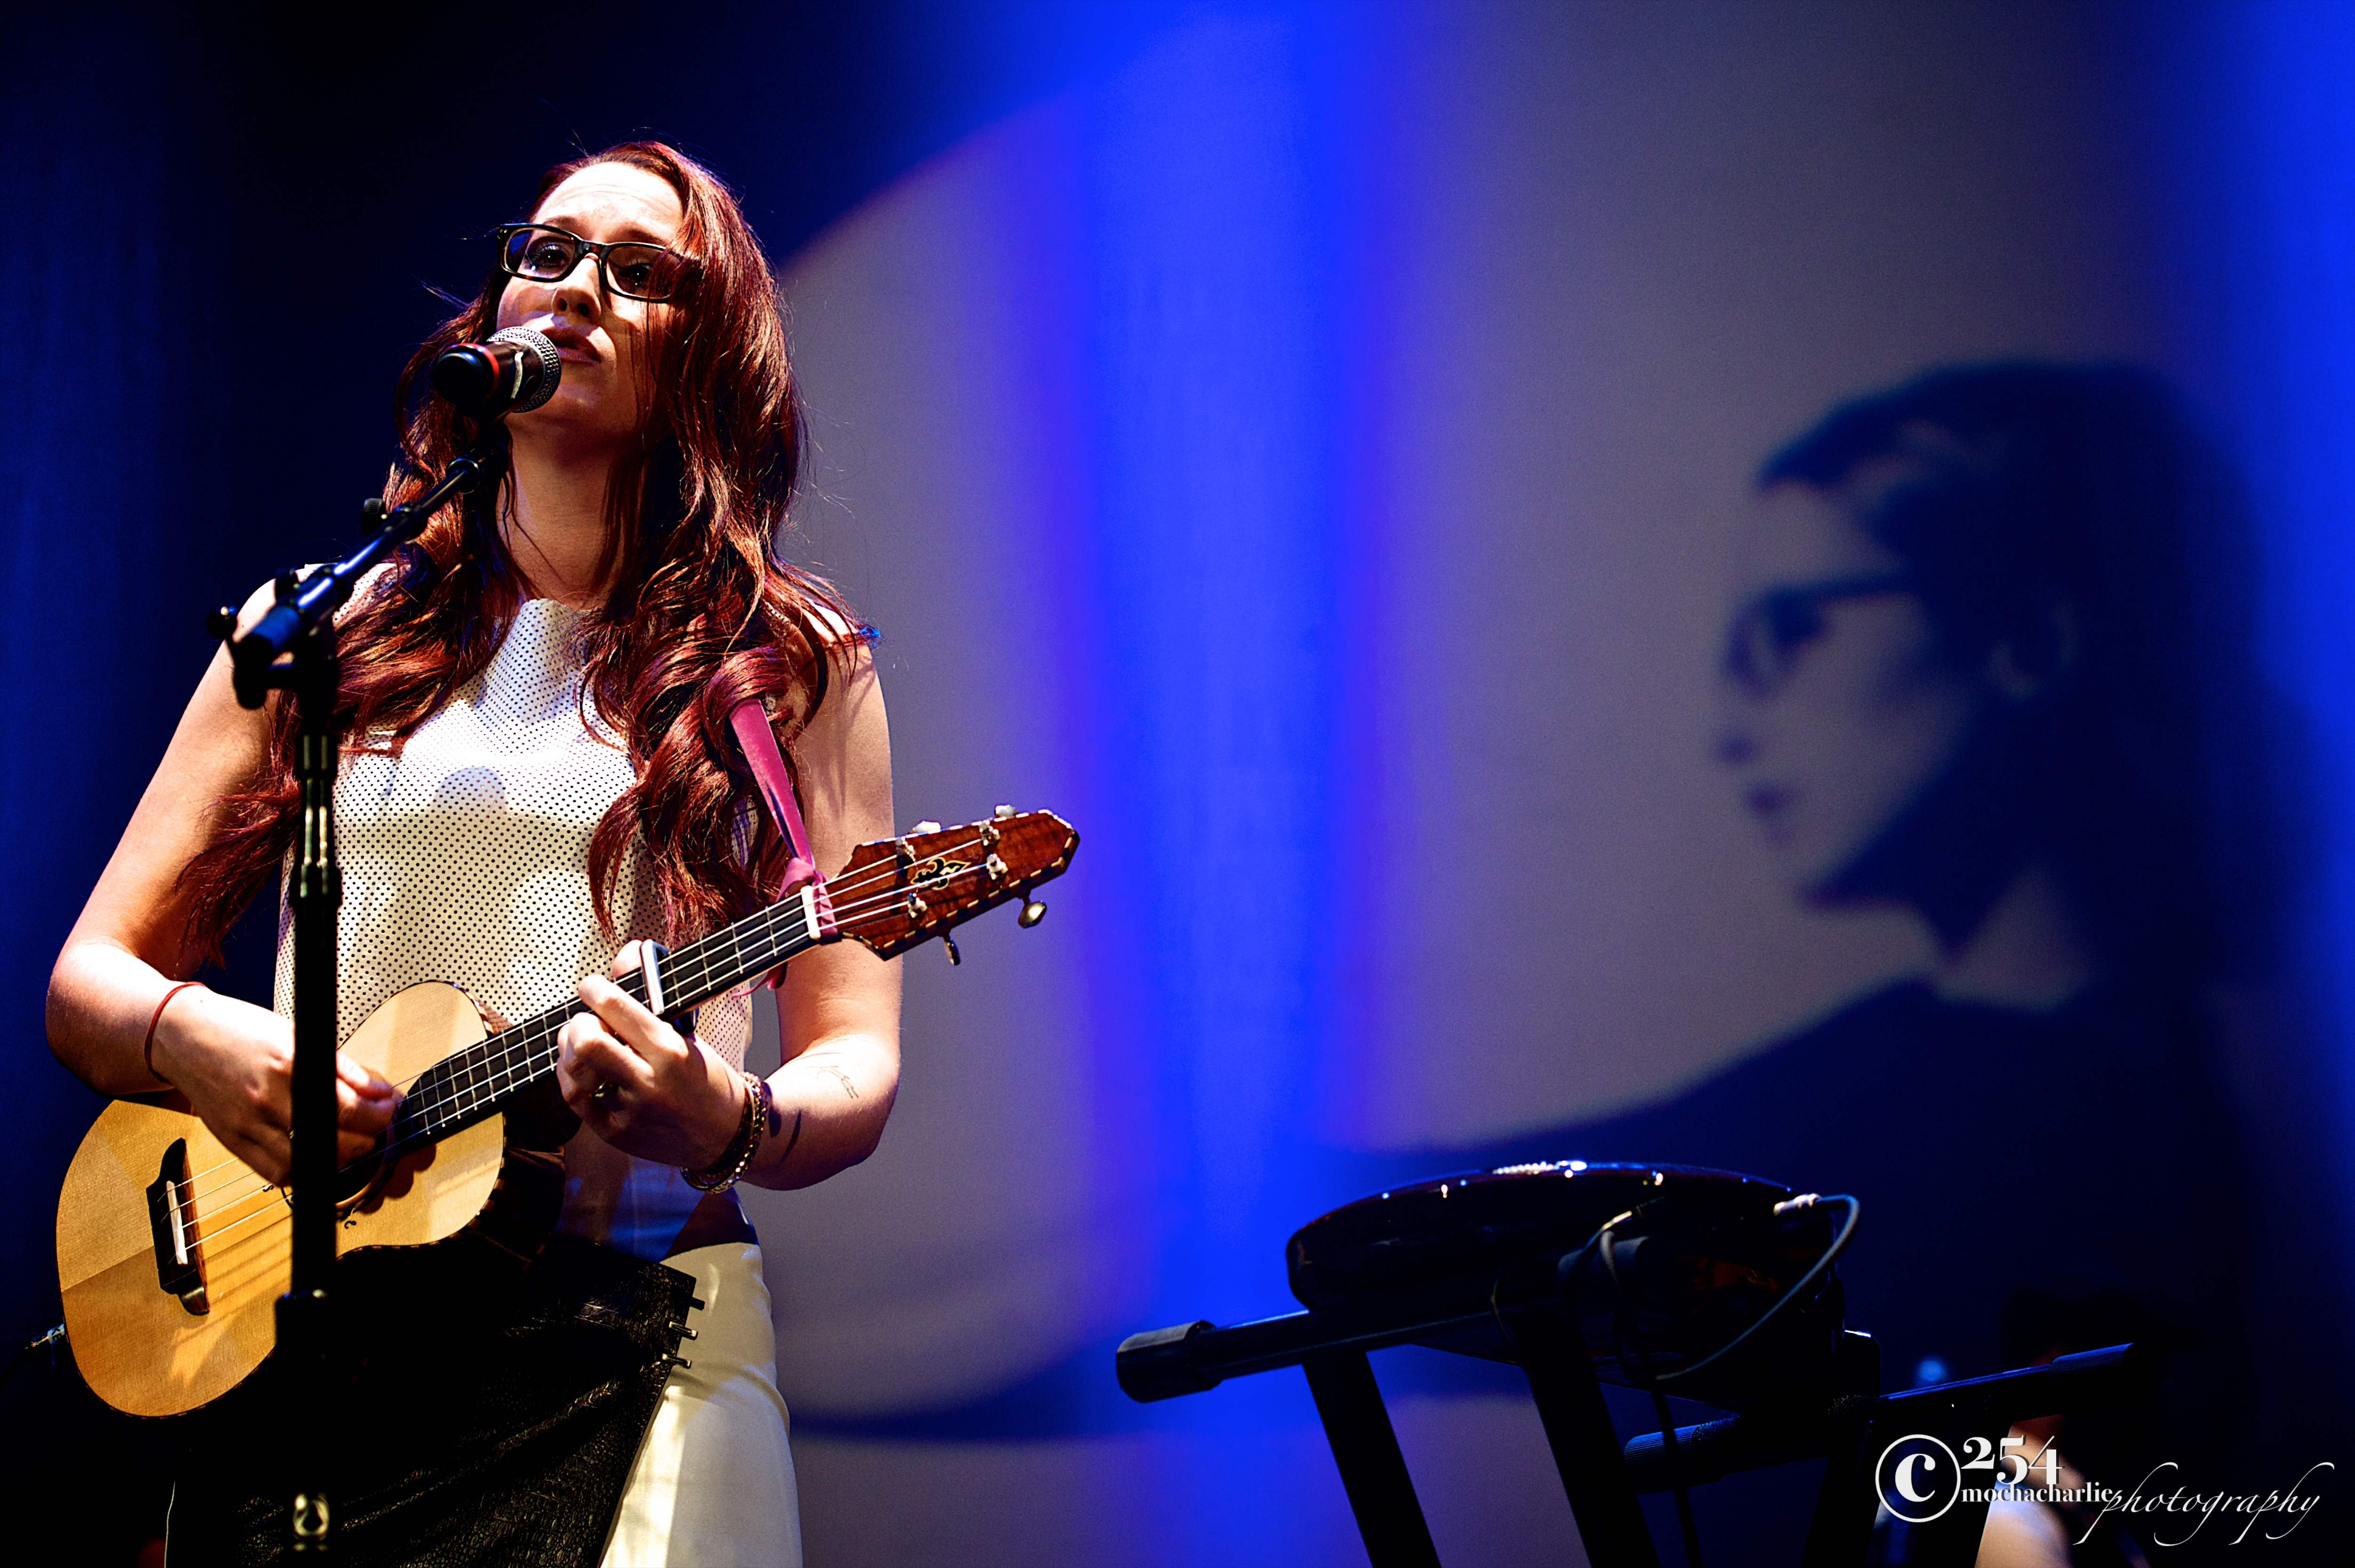 Ingrid Michaelson Live at The Paramount (Photo by Mocha Charlie)